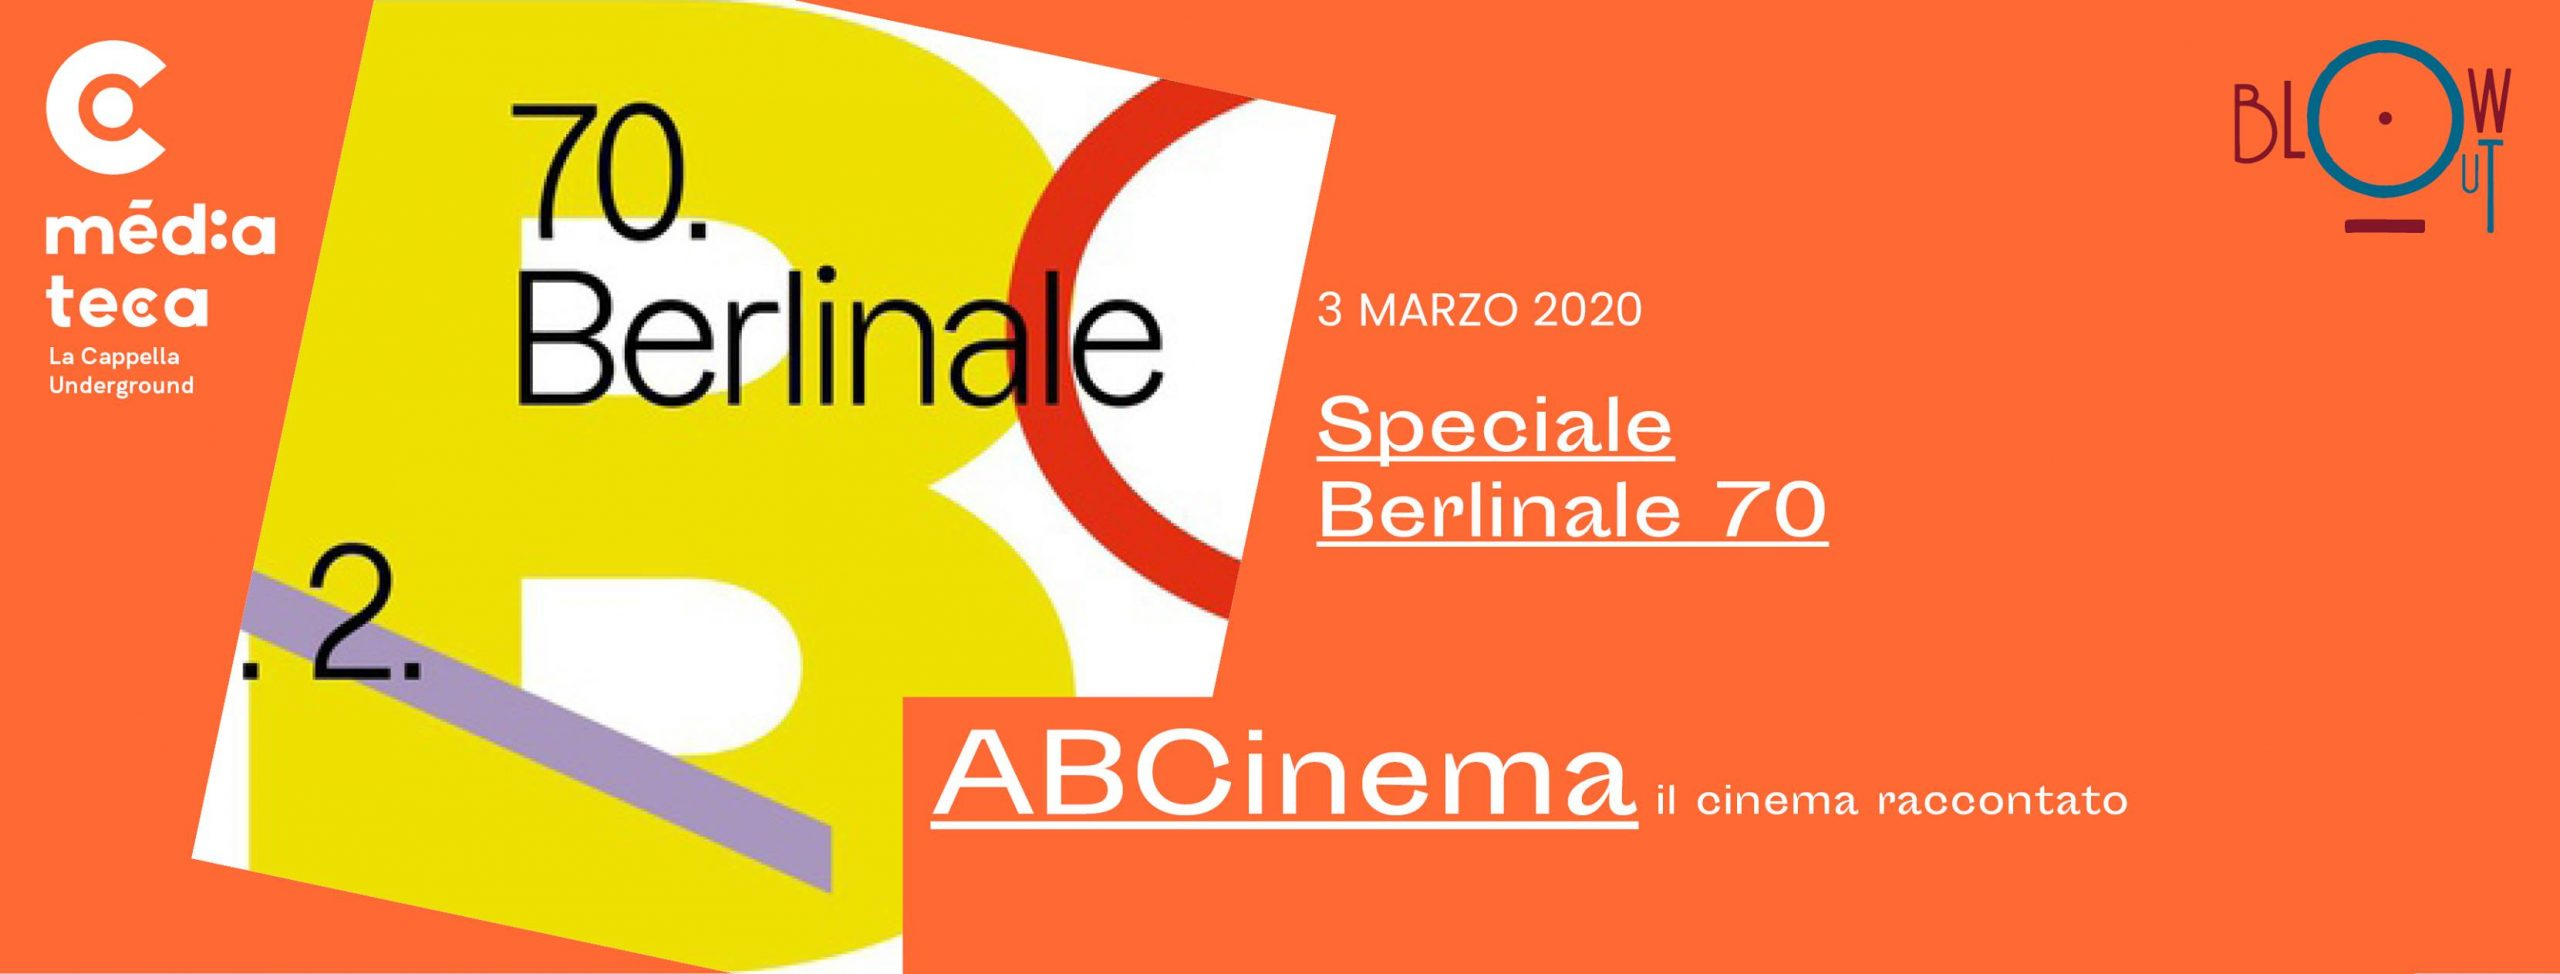 ABCinema: Speciale Berlinale '70